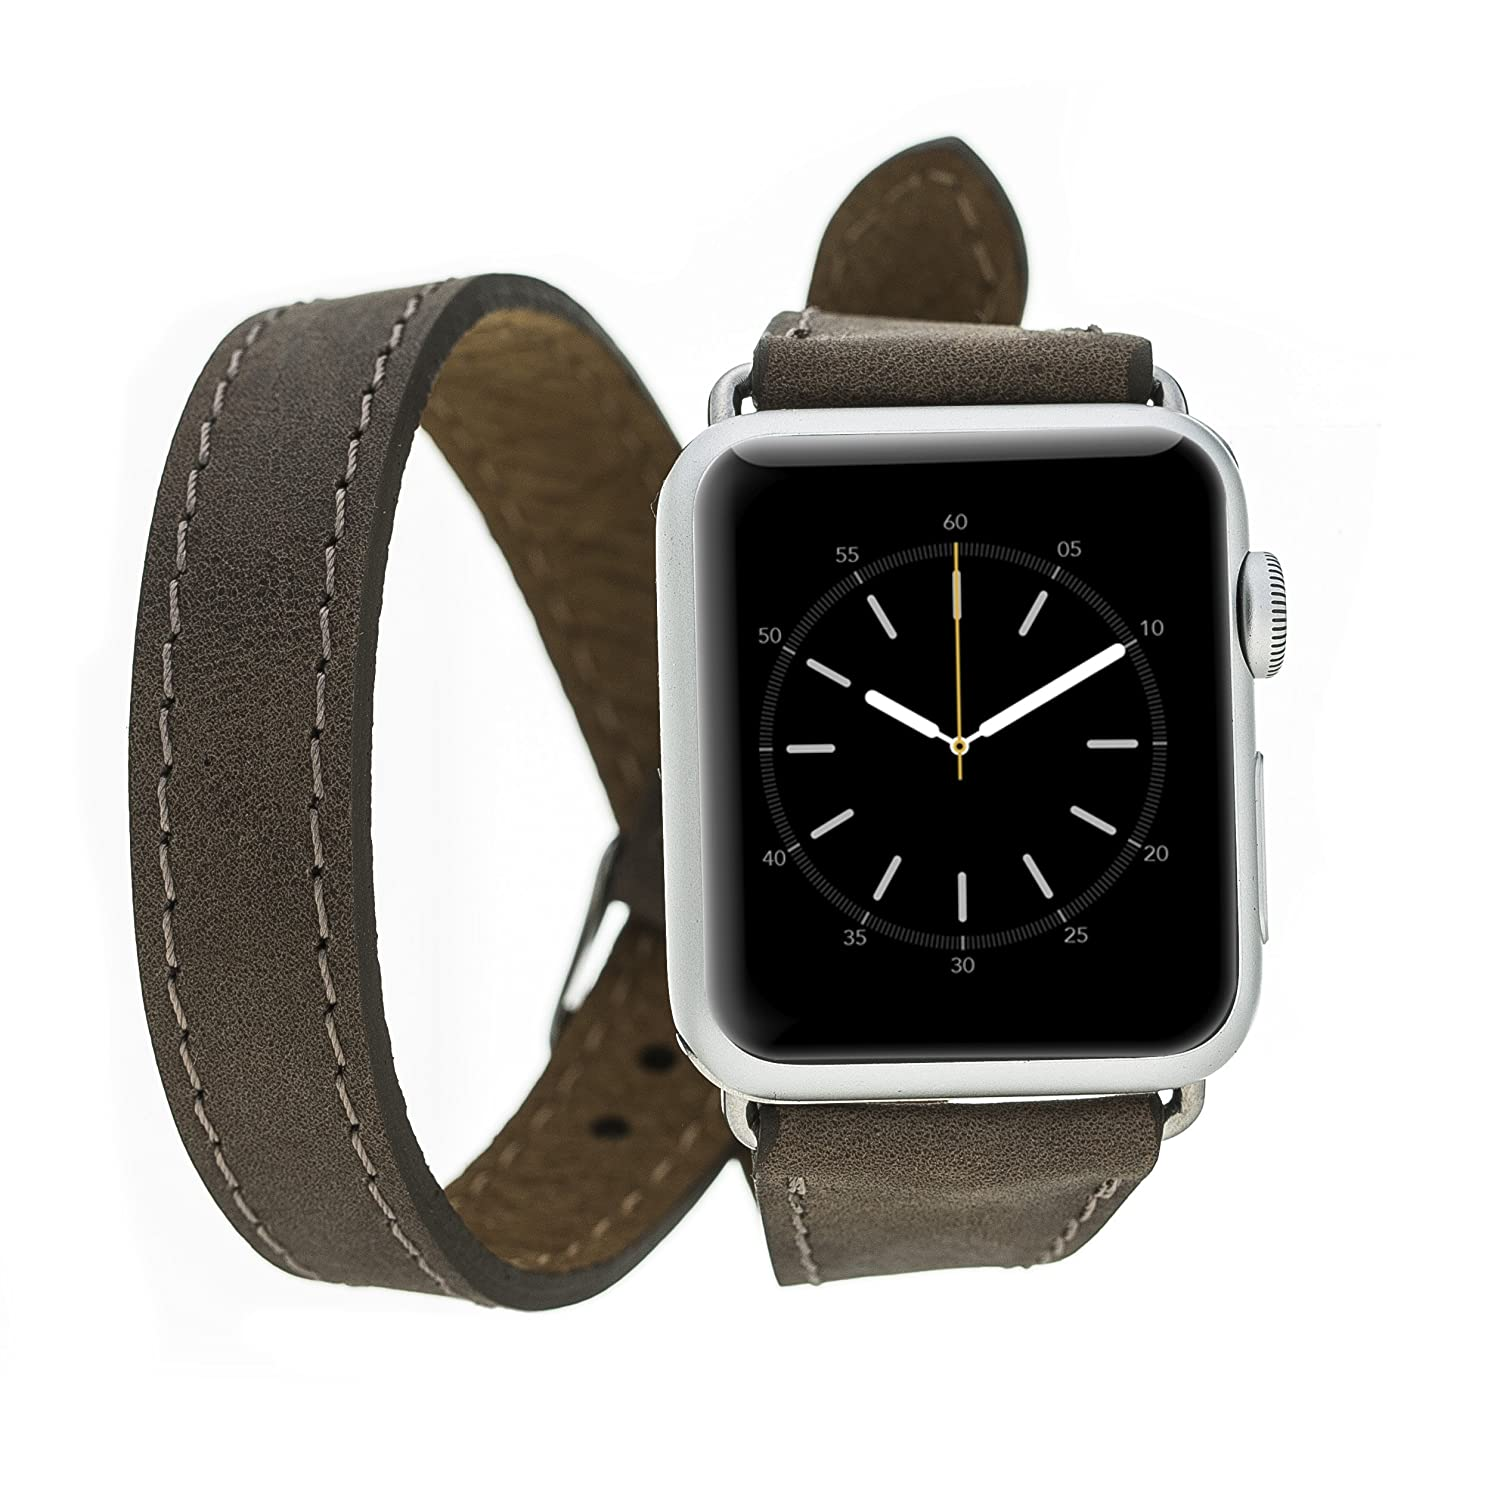 Bluejay Compatible Double Wrap Leather Watch Band for Apple Watch, Slim Double Wrap Design for Apple Watch Series 4 3 2 1 (Bison, 40mm)